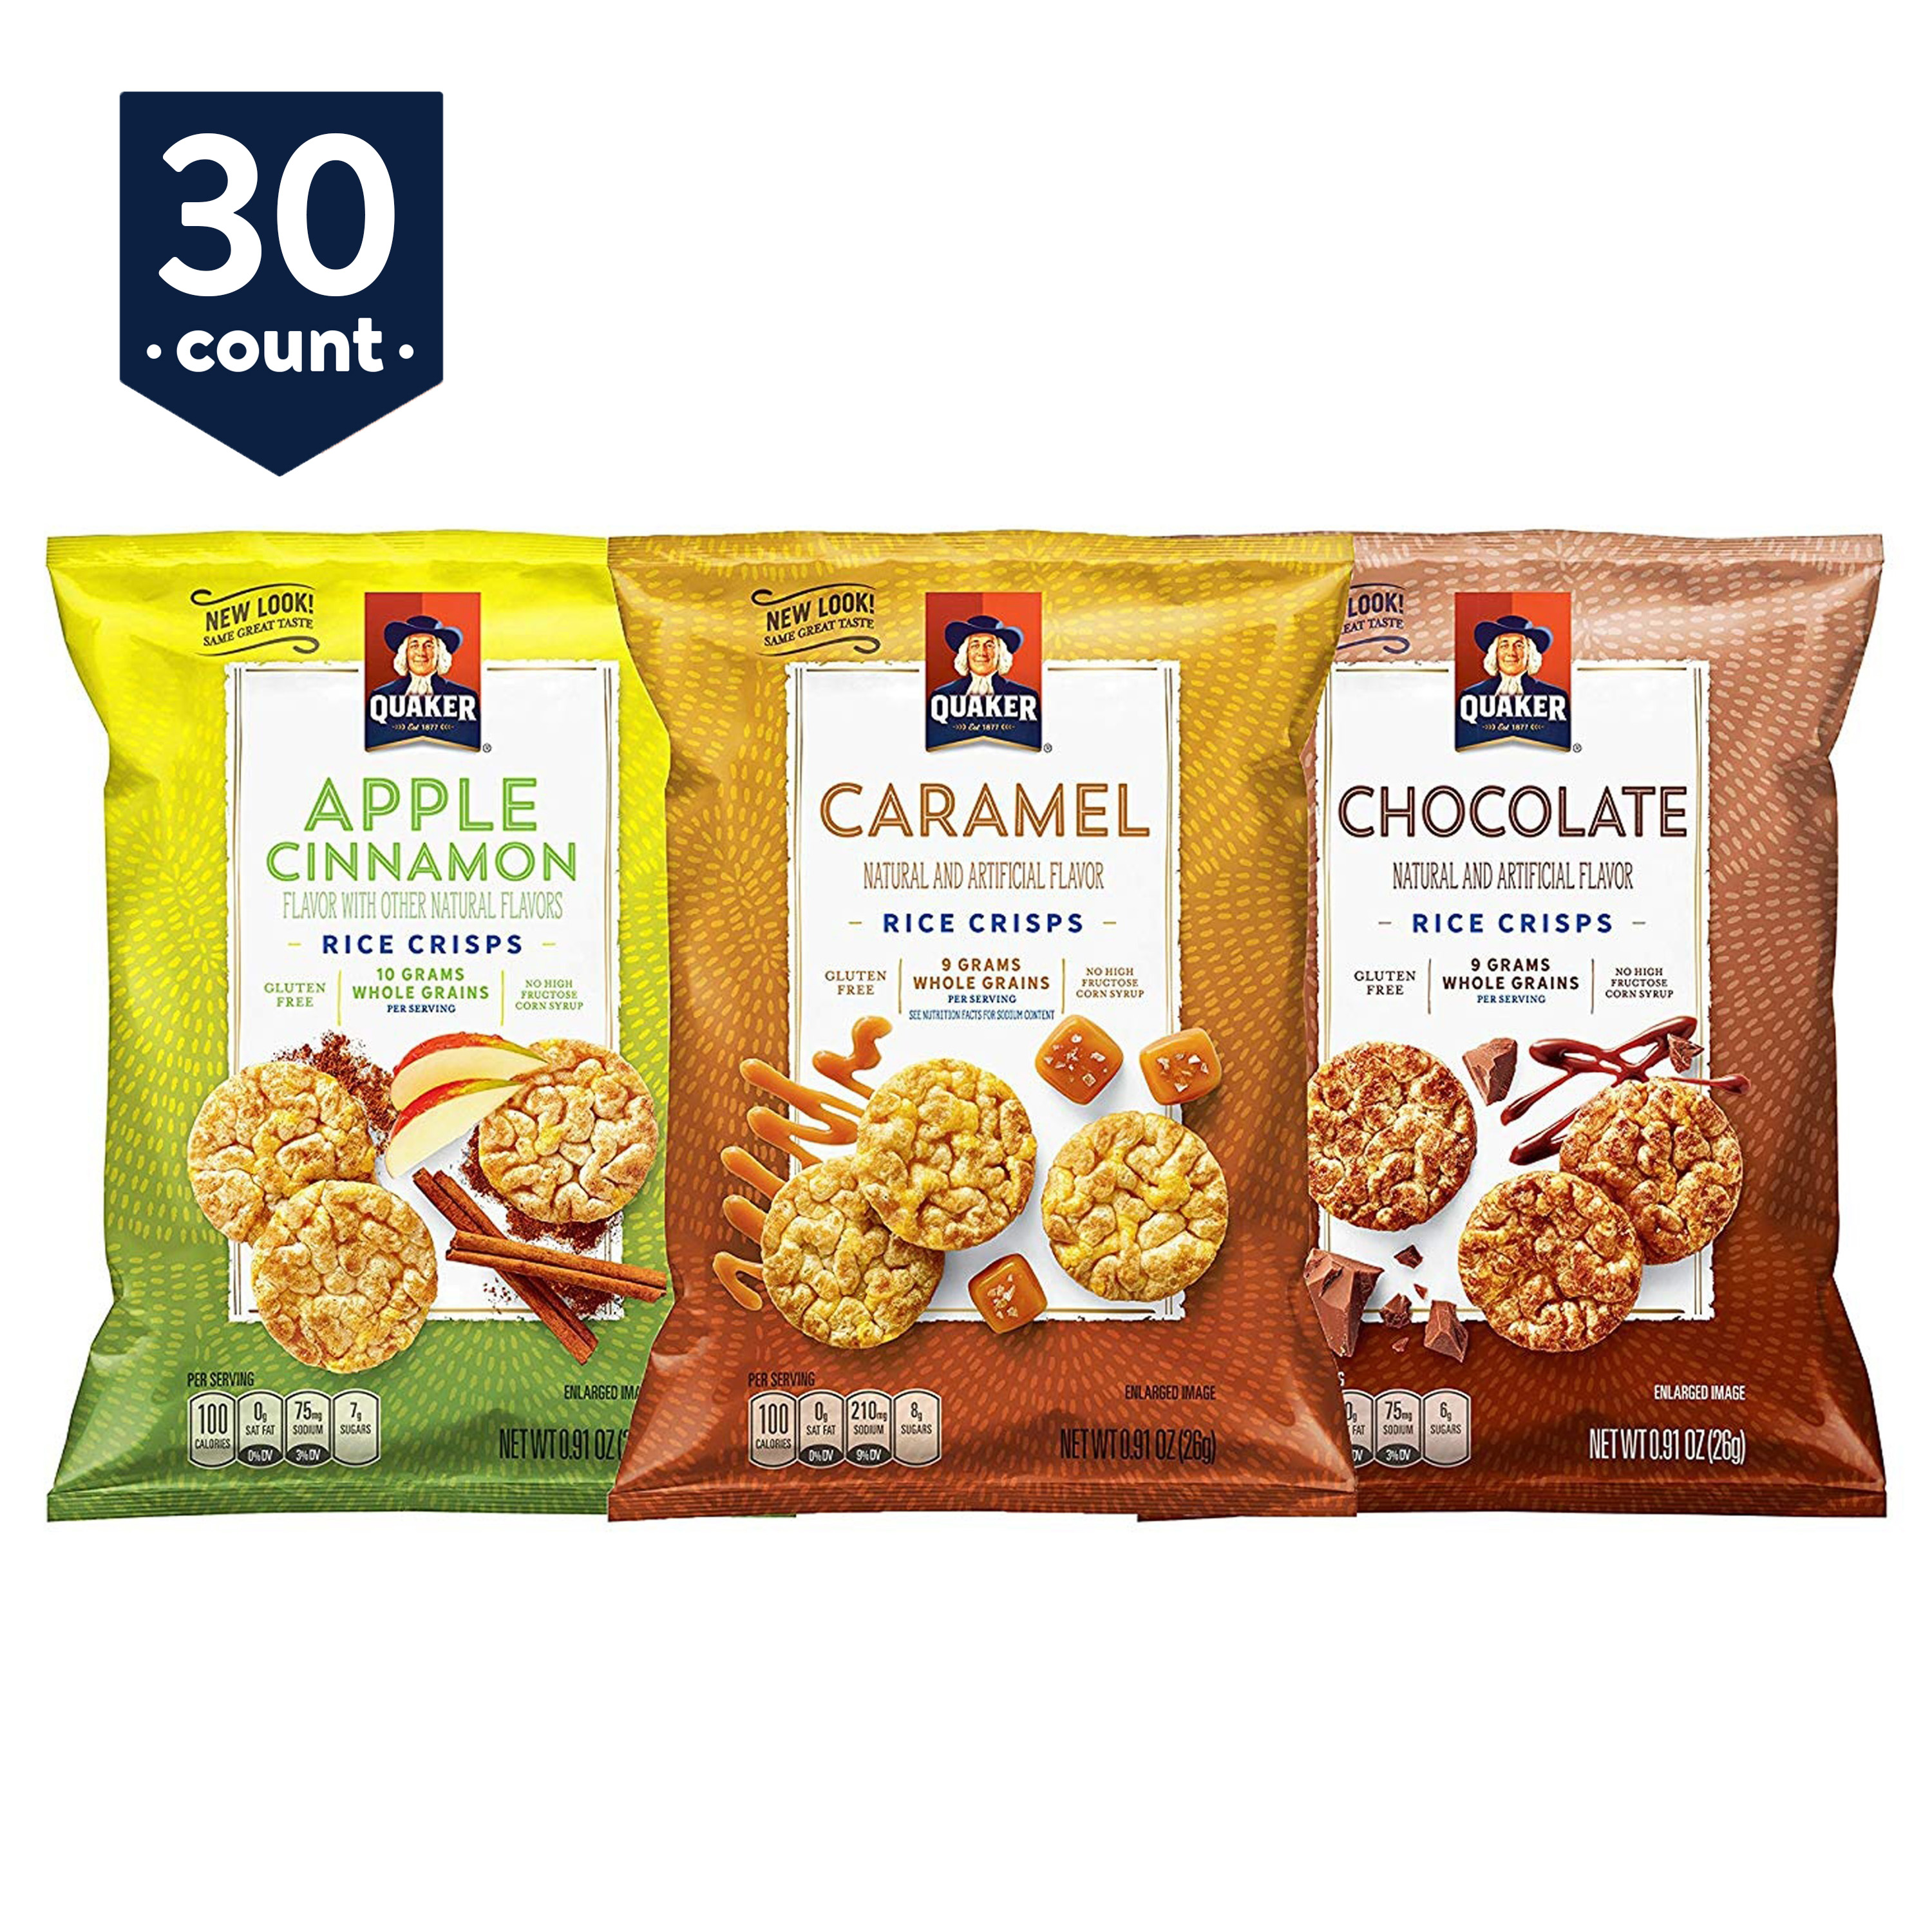 Quaker Rice Crisps Variety Pack, 0.91 oz Bags, 30 Count